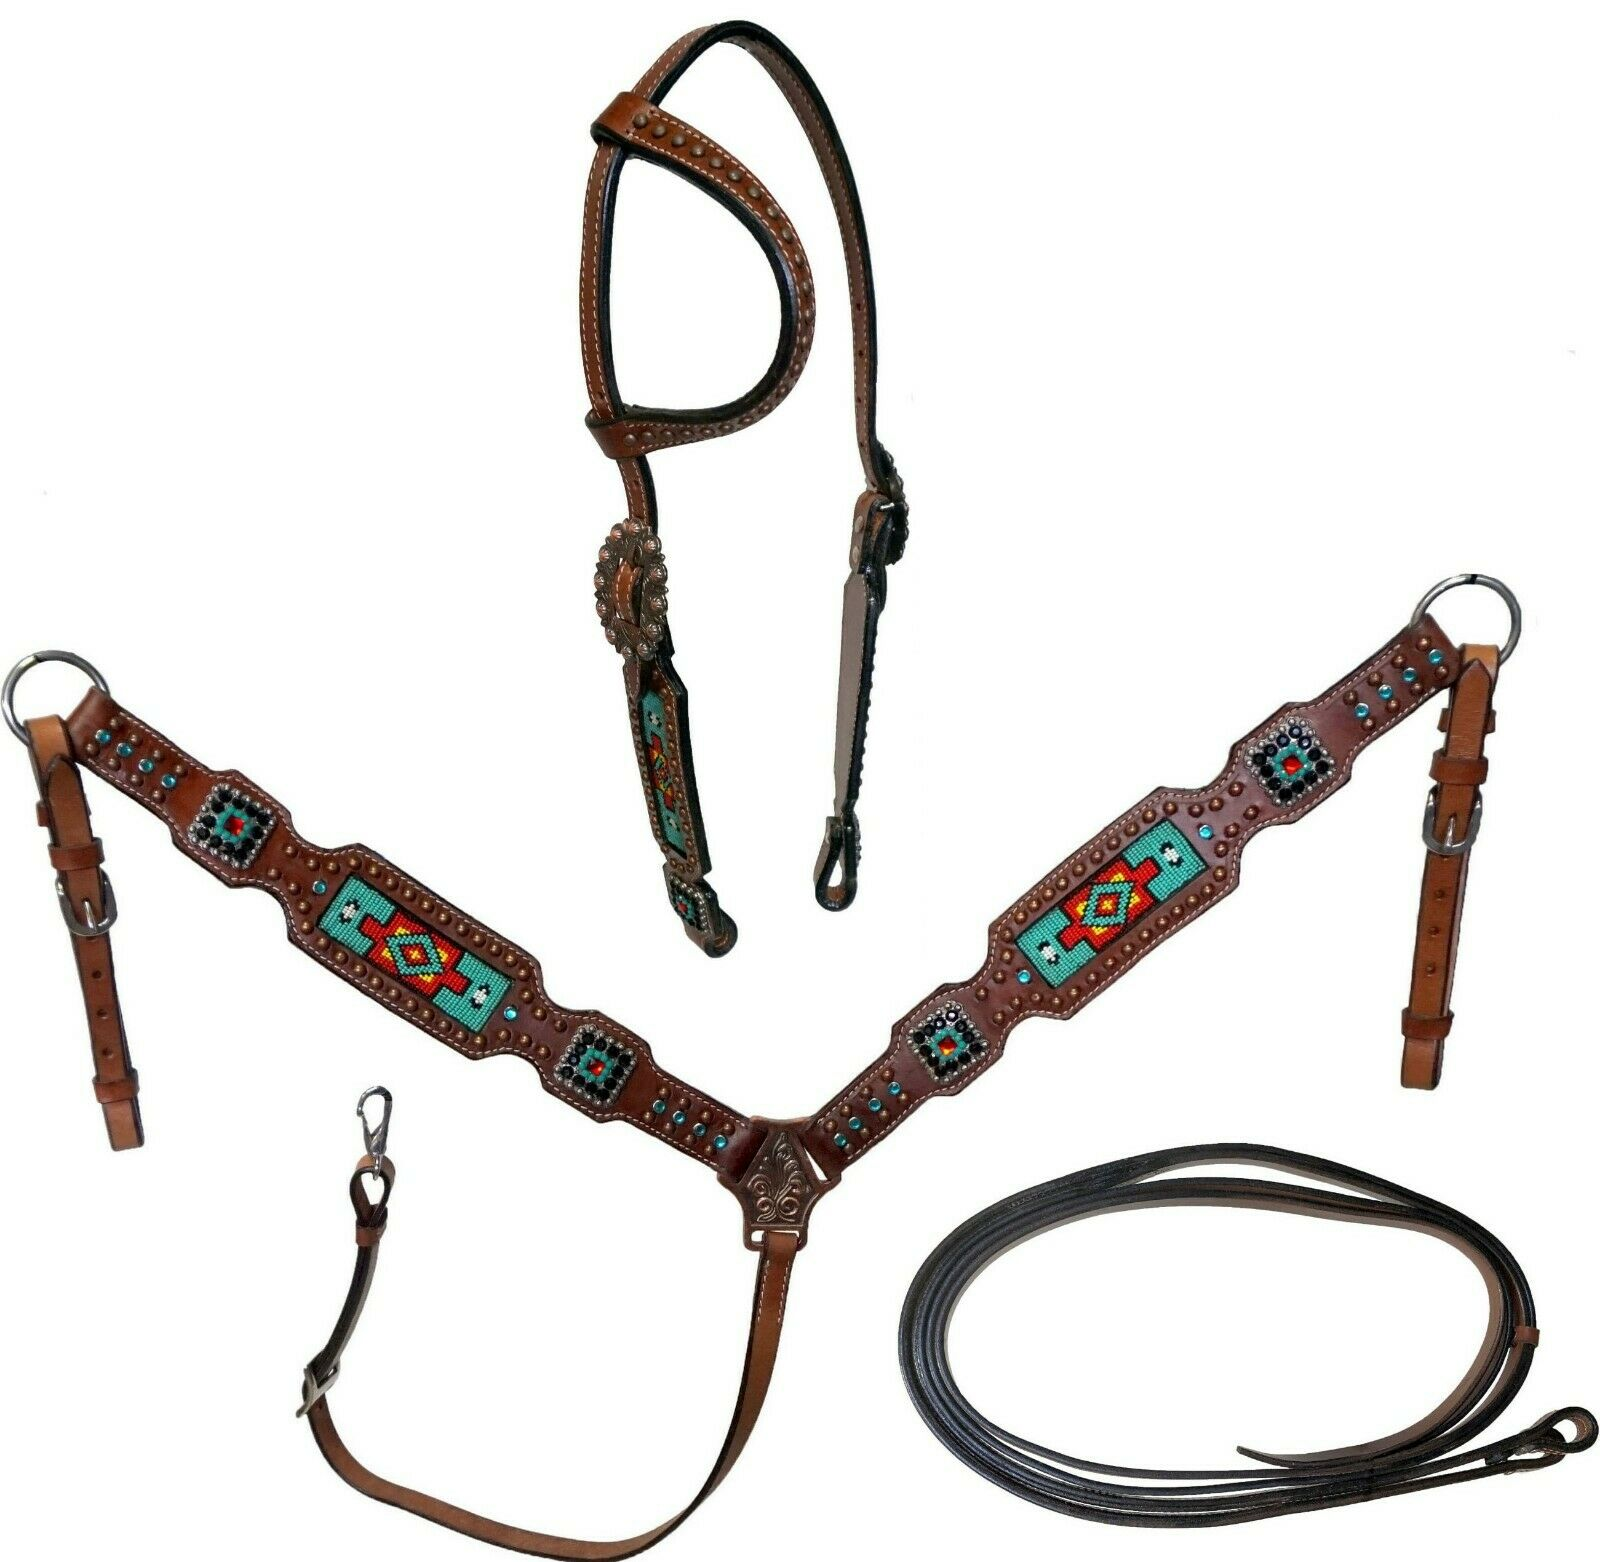 Equitem Medium Oil Leather Headstall BreastCollar Set w Teal & rosso Beaded Inlay